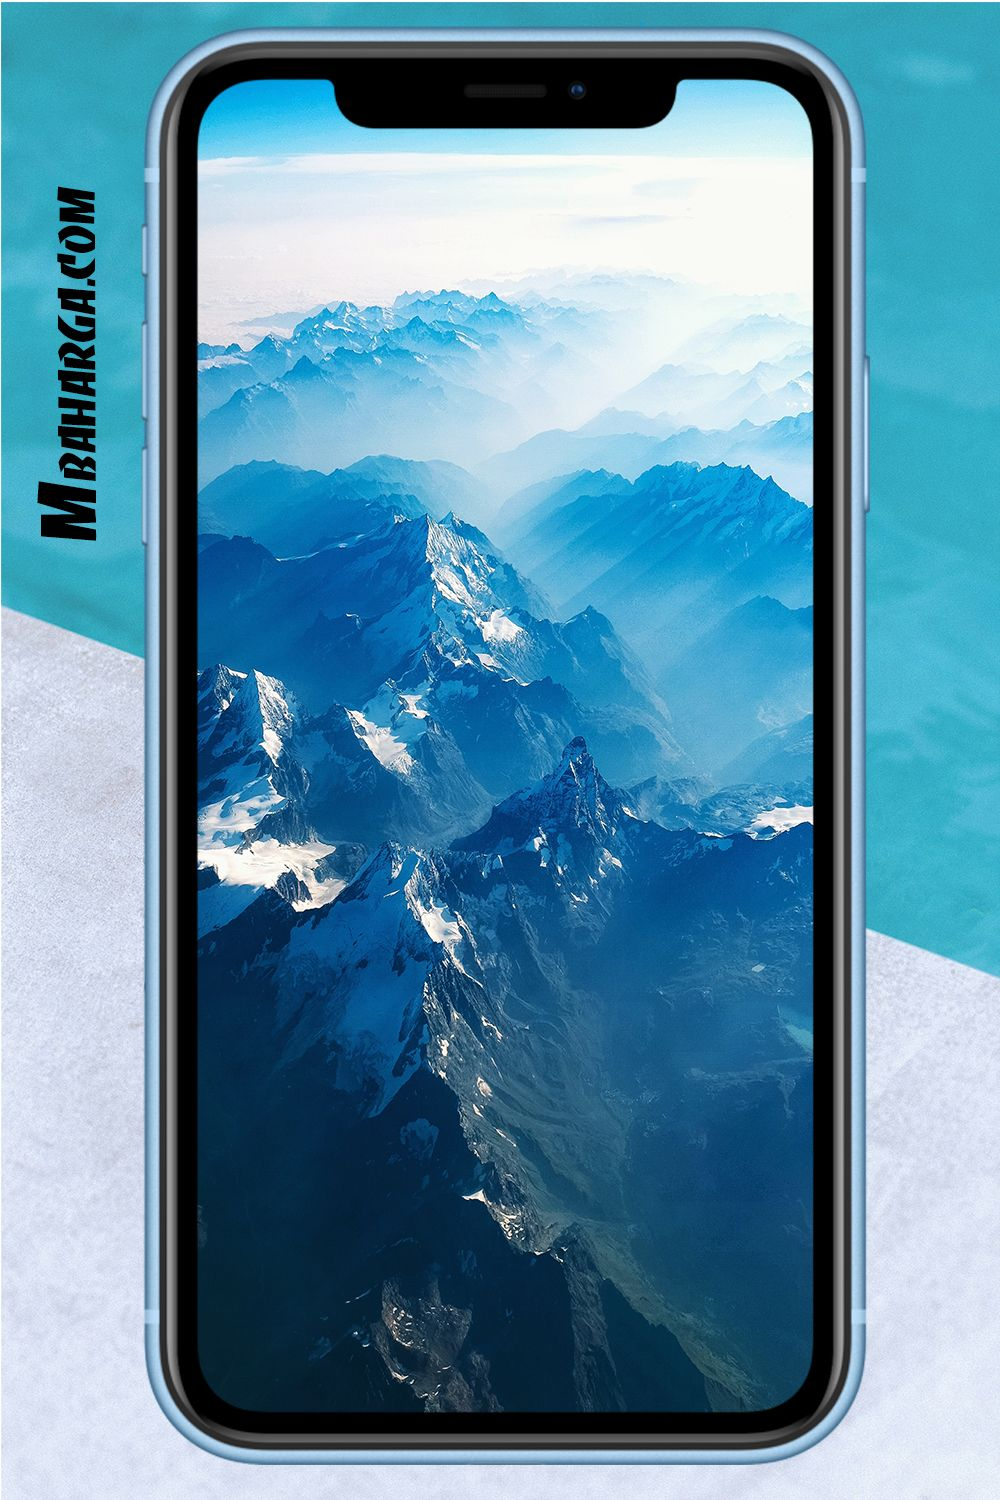 Iphone X Notch Hiding Wallpaper Hd In 2020 Iphone Wallpaper